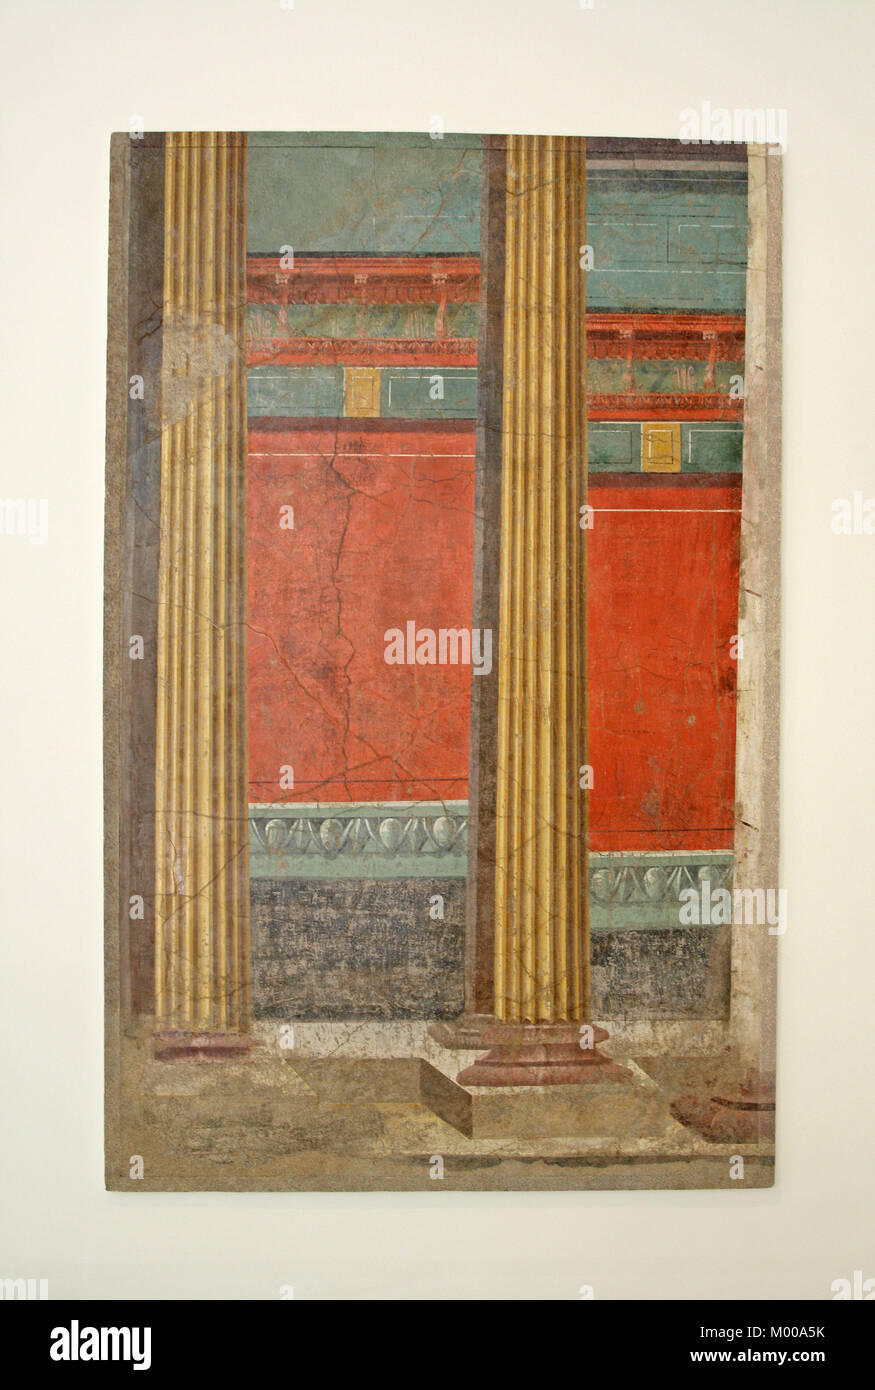 Wall painting with illusionistic architecture from the Late Roman Republican era (50-40 BC), The Metropolitan Museum - Stock Image